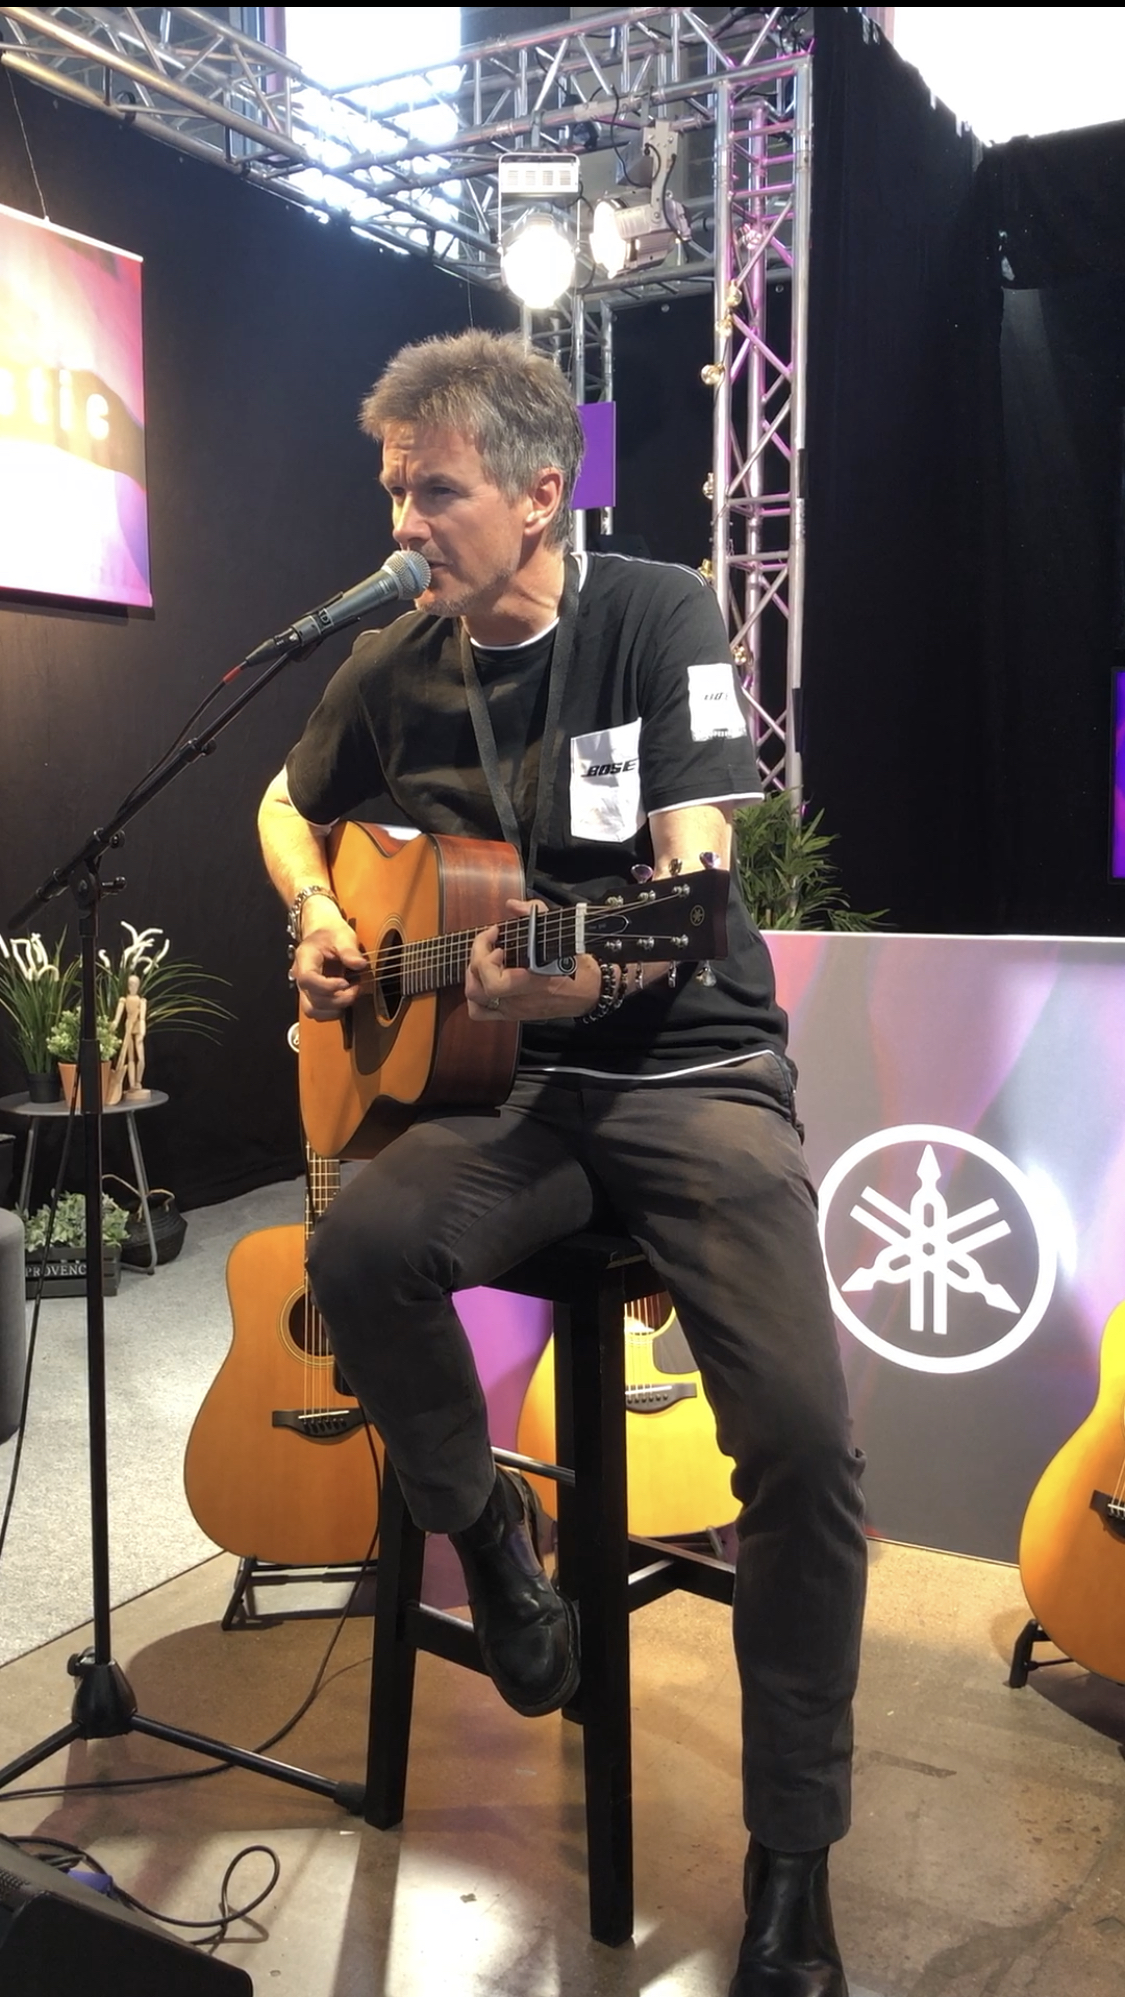 Playing at the Yamaha stand……